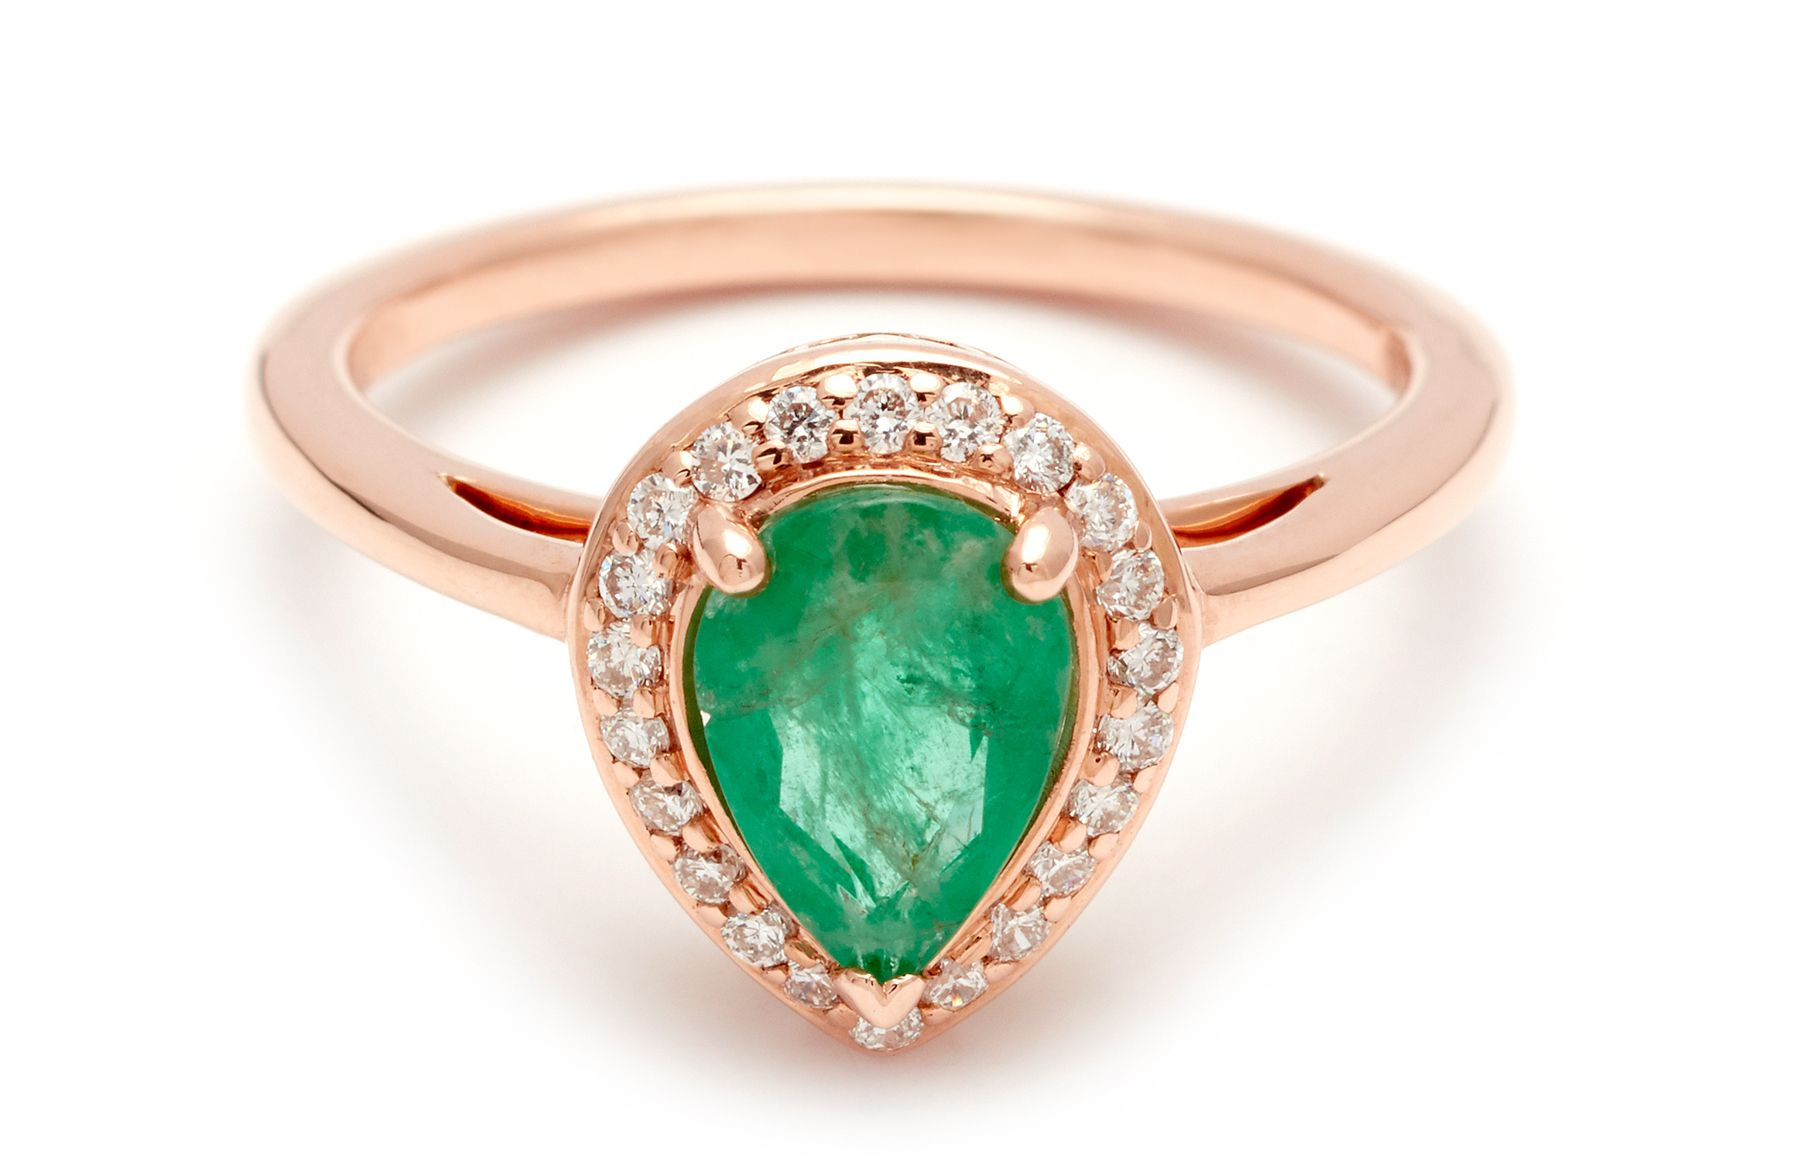 jjrt campari il rose ring champagne emerald sapphire listing gold engagement cut diamond fullxfull